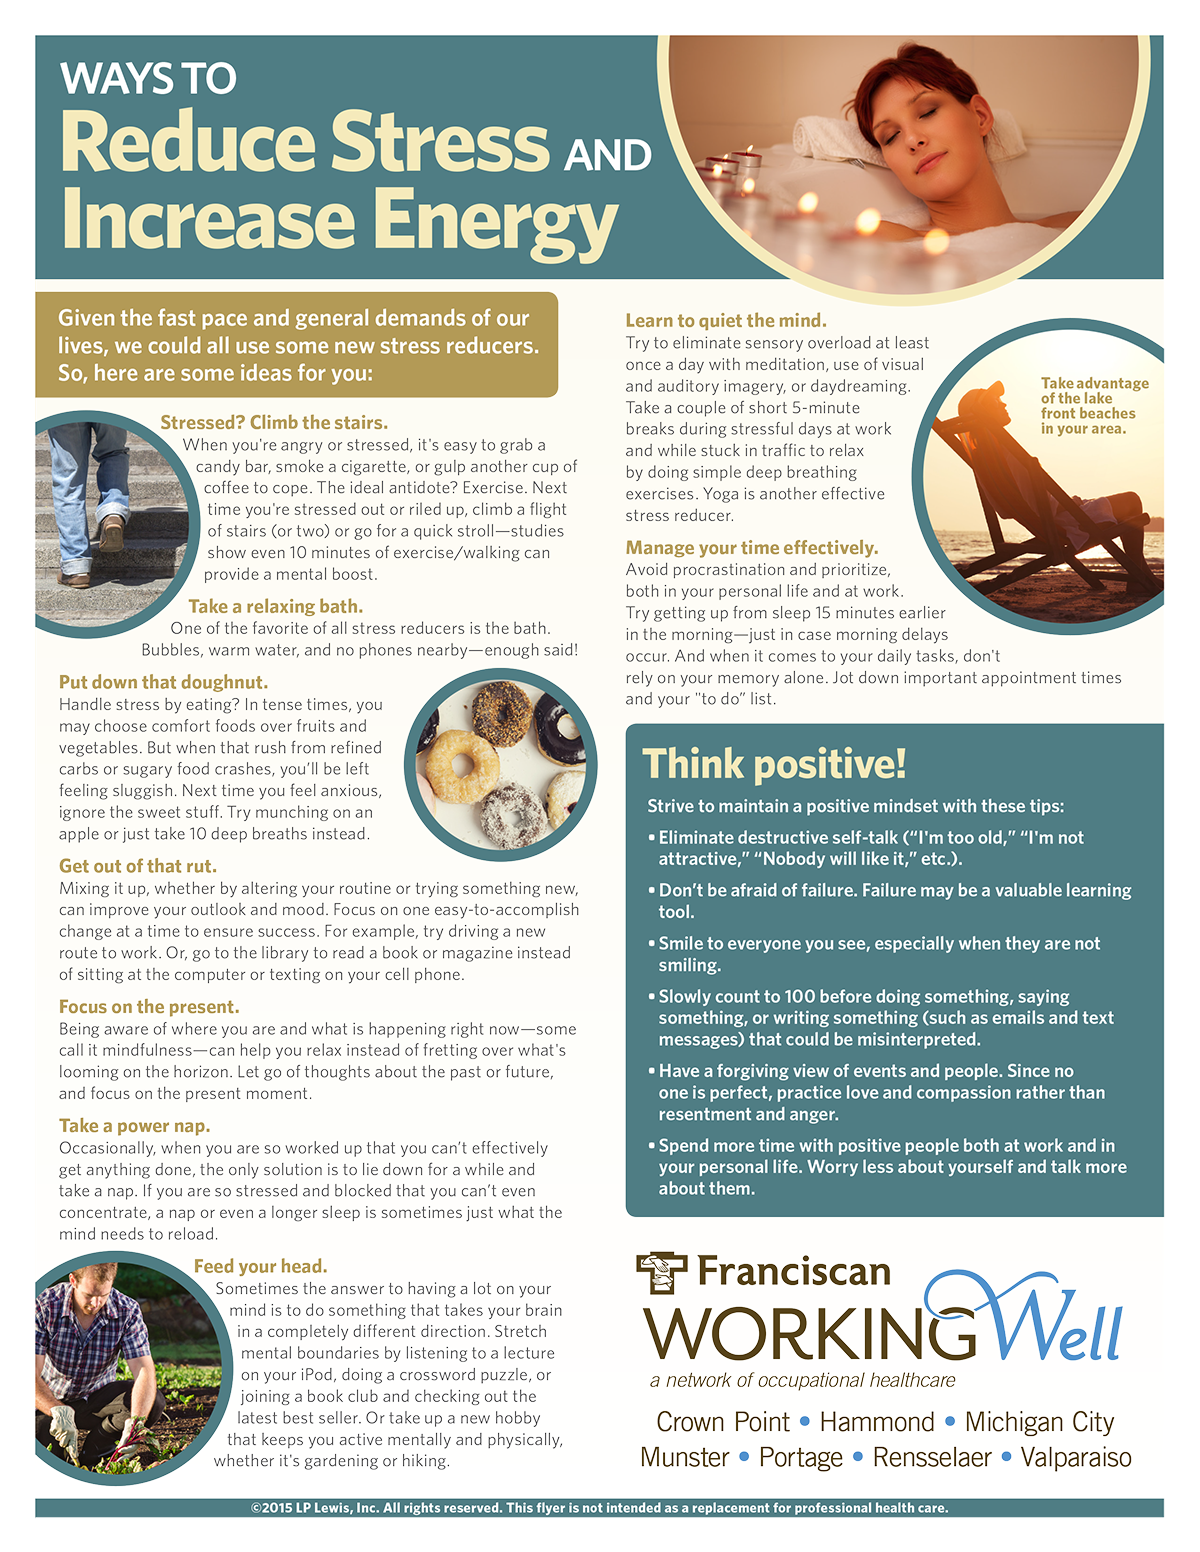 Reduce Your Stress Increase Your Energy! Health & Wellness